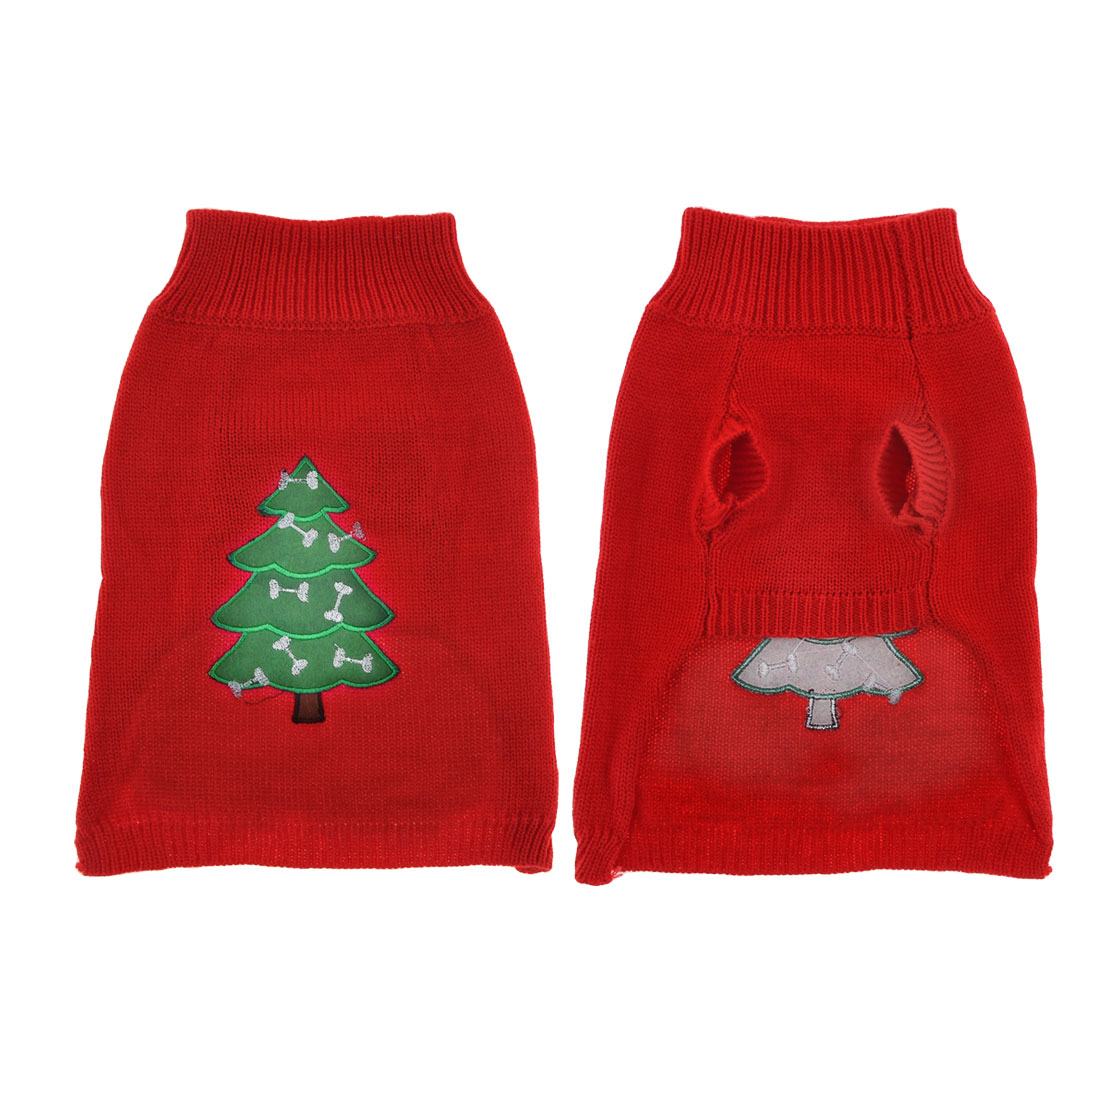 Winter Red Christmas tree Pattern Knit Yorkie Poodle Clothing Sweater S